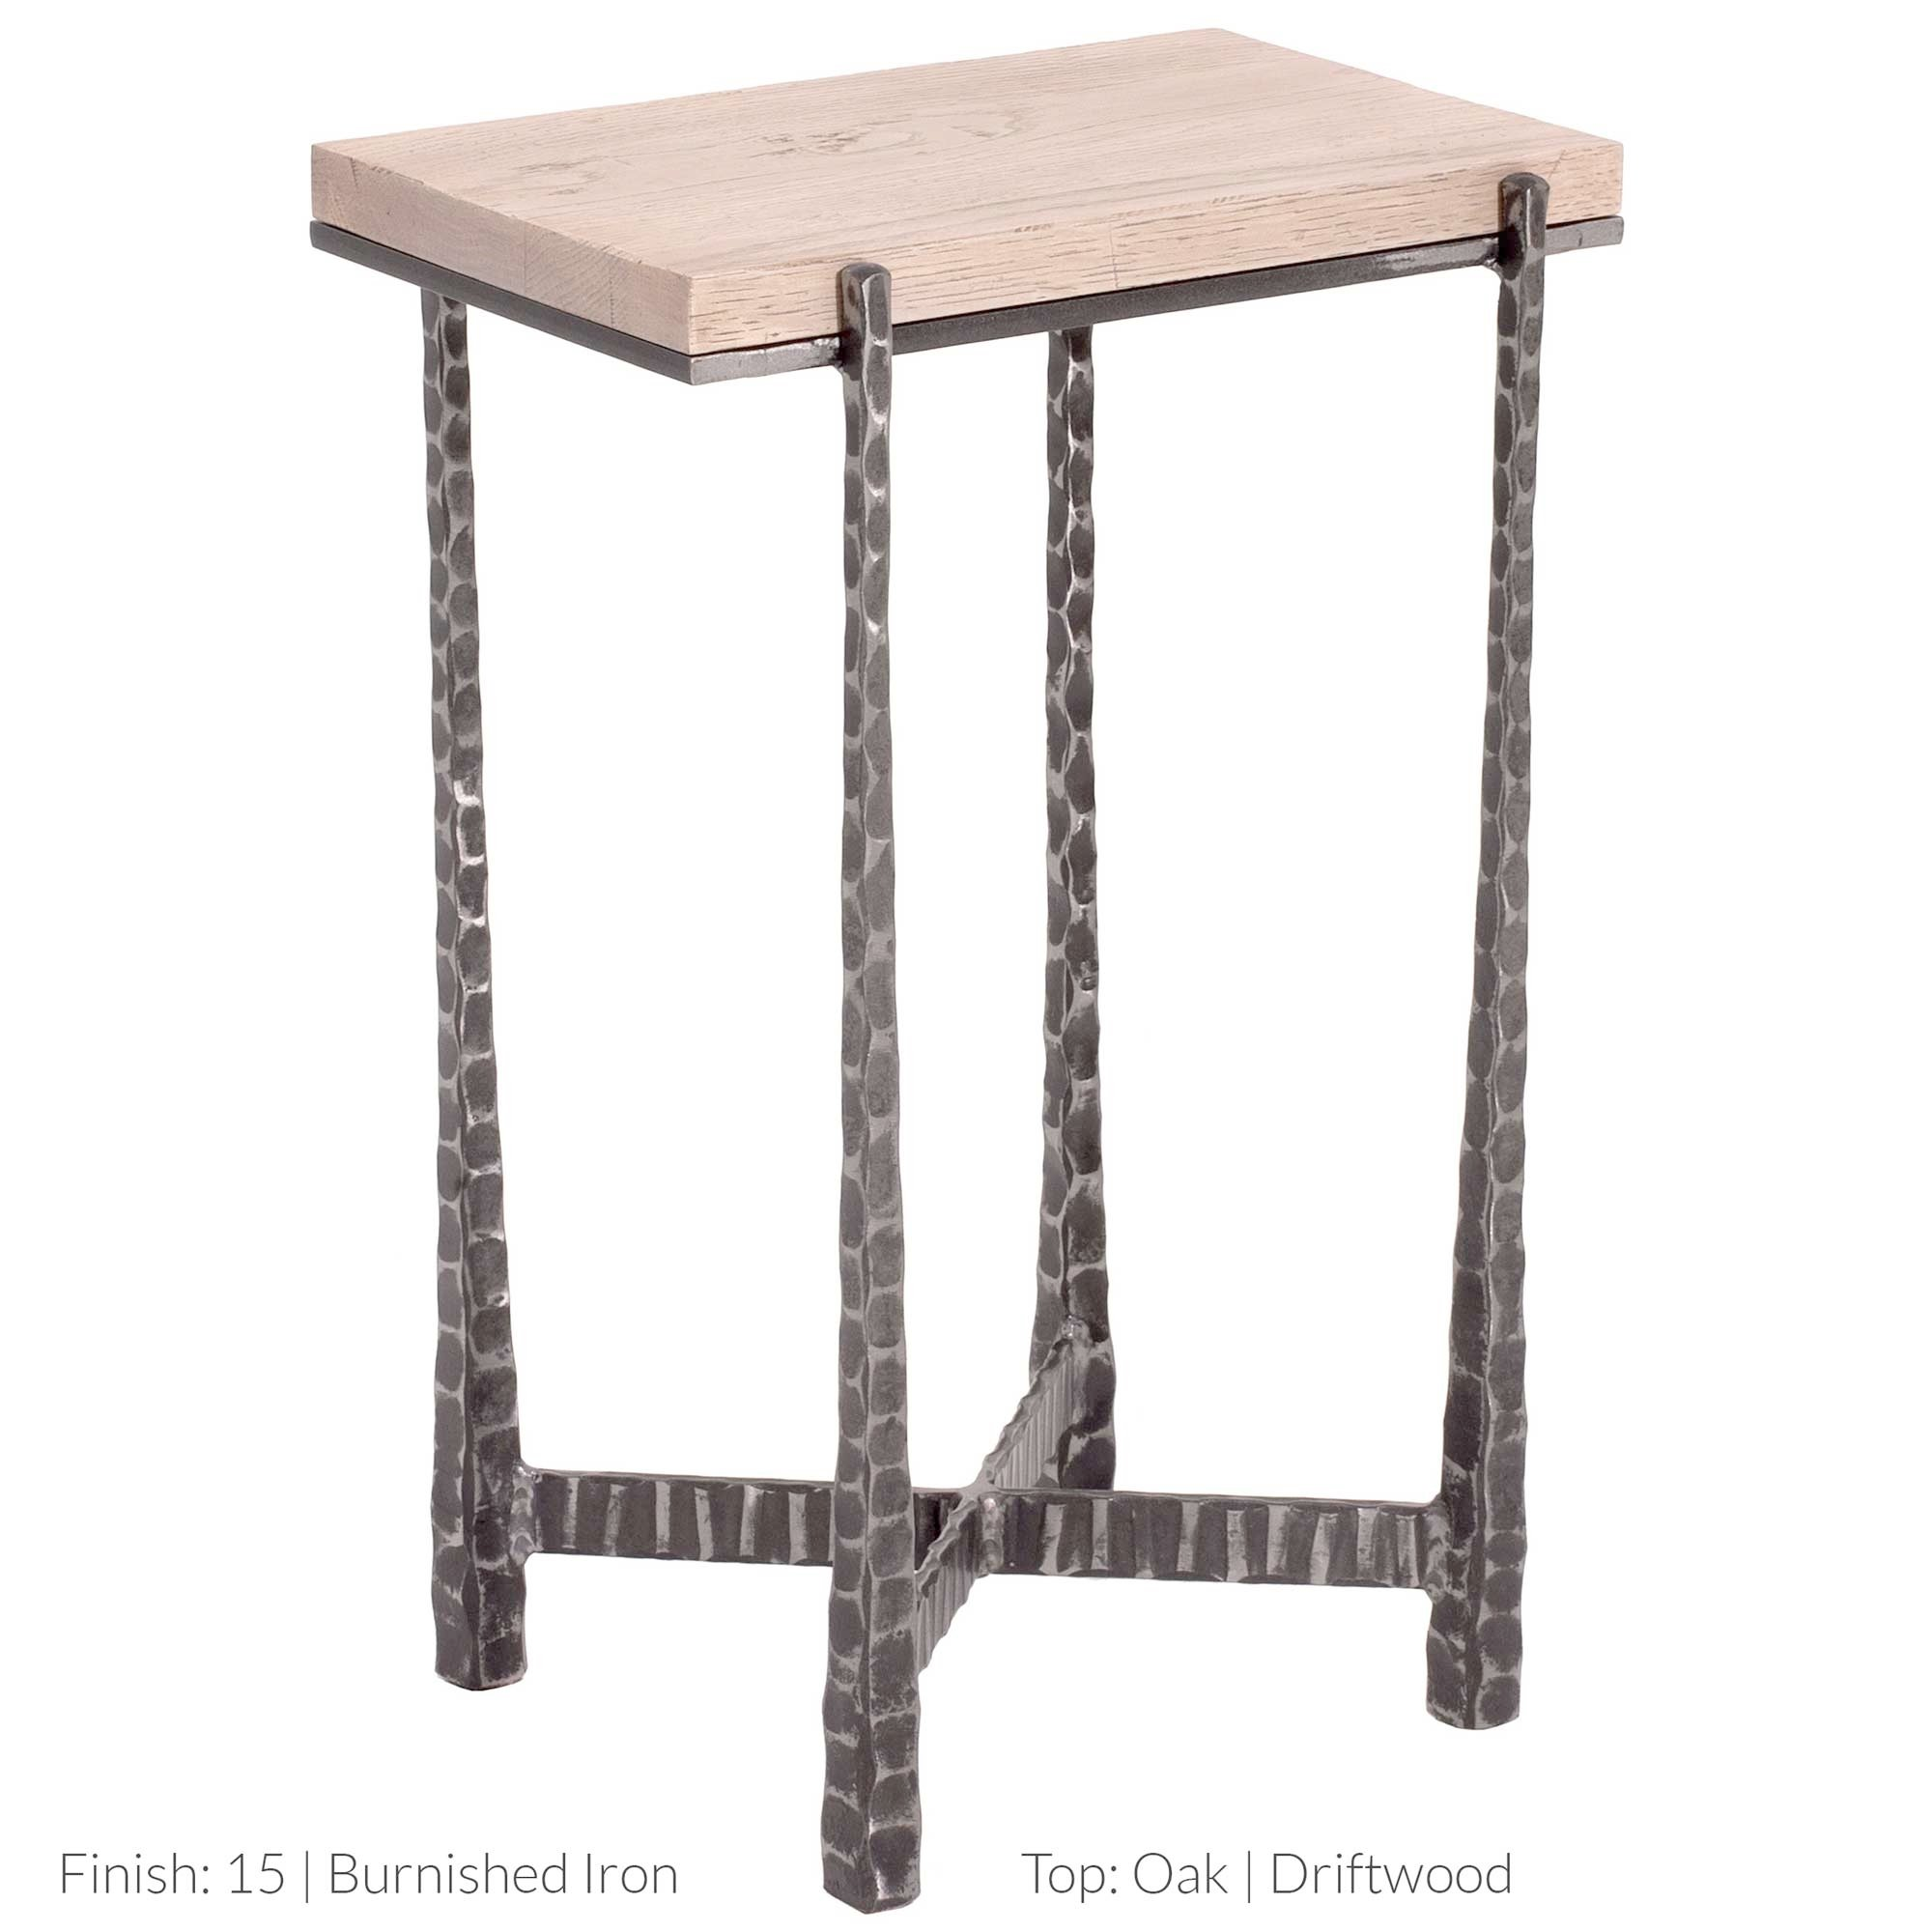 wrought iron accent table tured the nash rectangular drink hand crafted artisans charleston forge tall skinny lamps long tablecloths round patio mapex drum stool parsons side